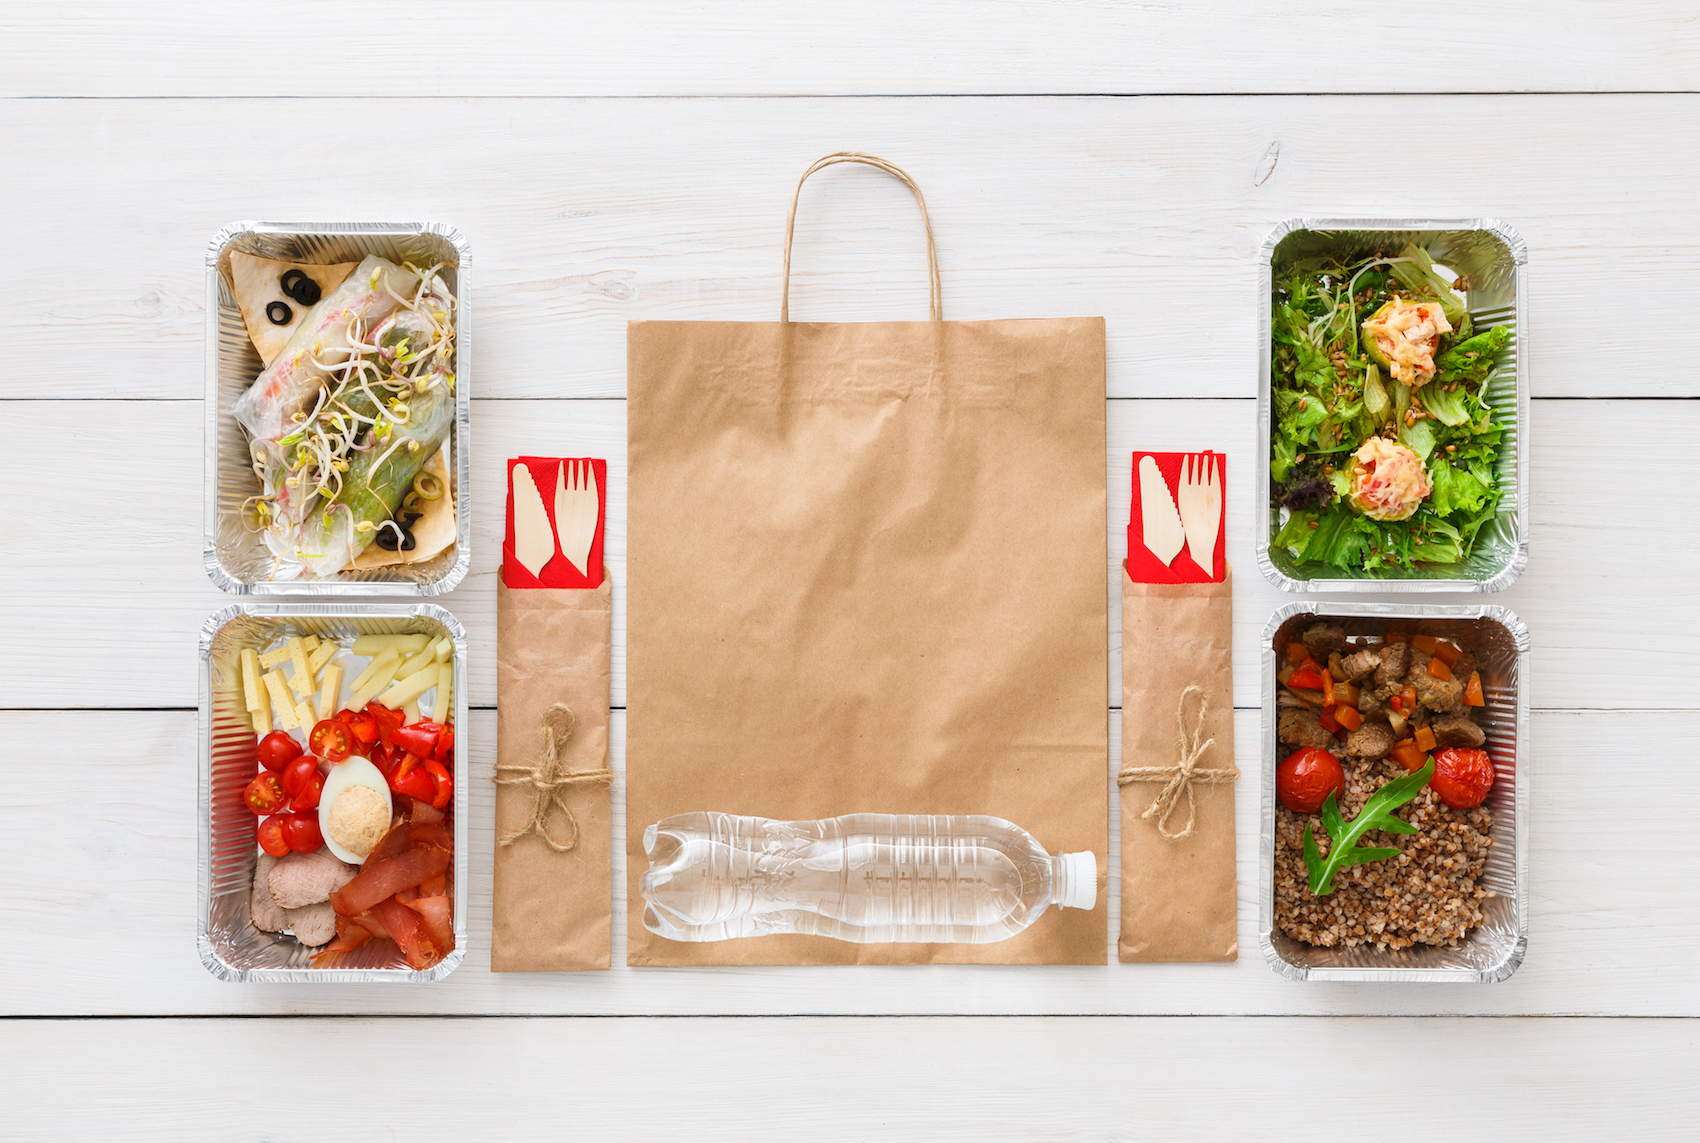 Healthy restaurant food. Chef prepared diet daily meals delivery. Fitness nutrition, vegetables, meat and fruits in foil boxes, cutlery and package. Top view, flat lay, mockup on wood with copy space